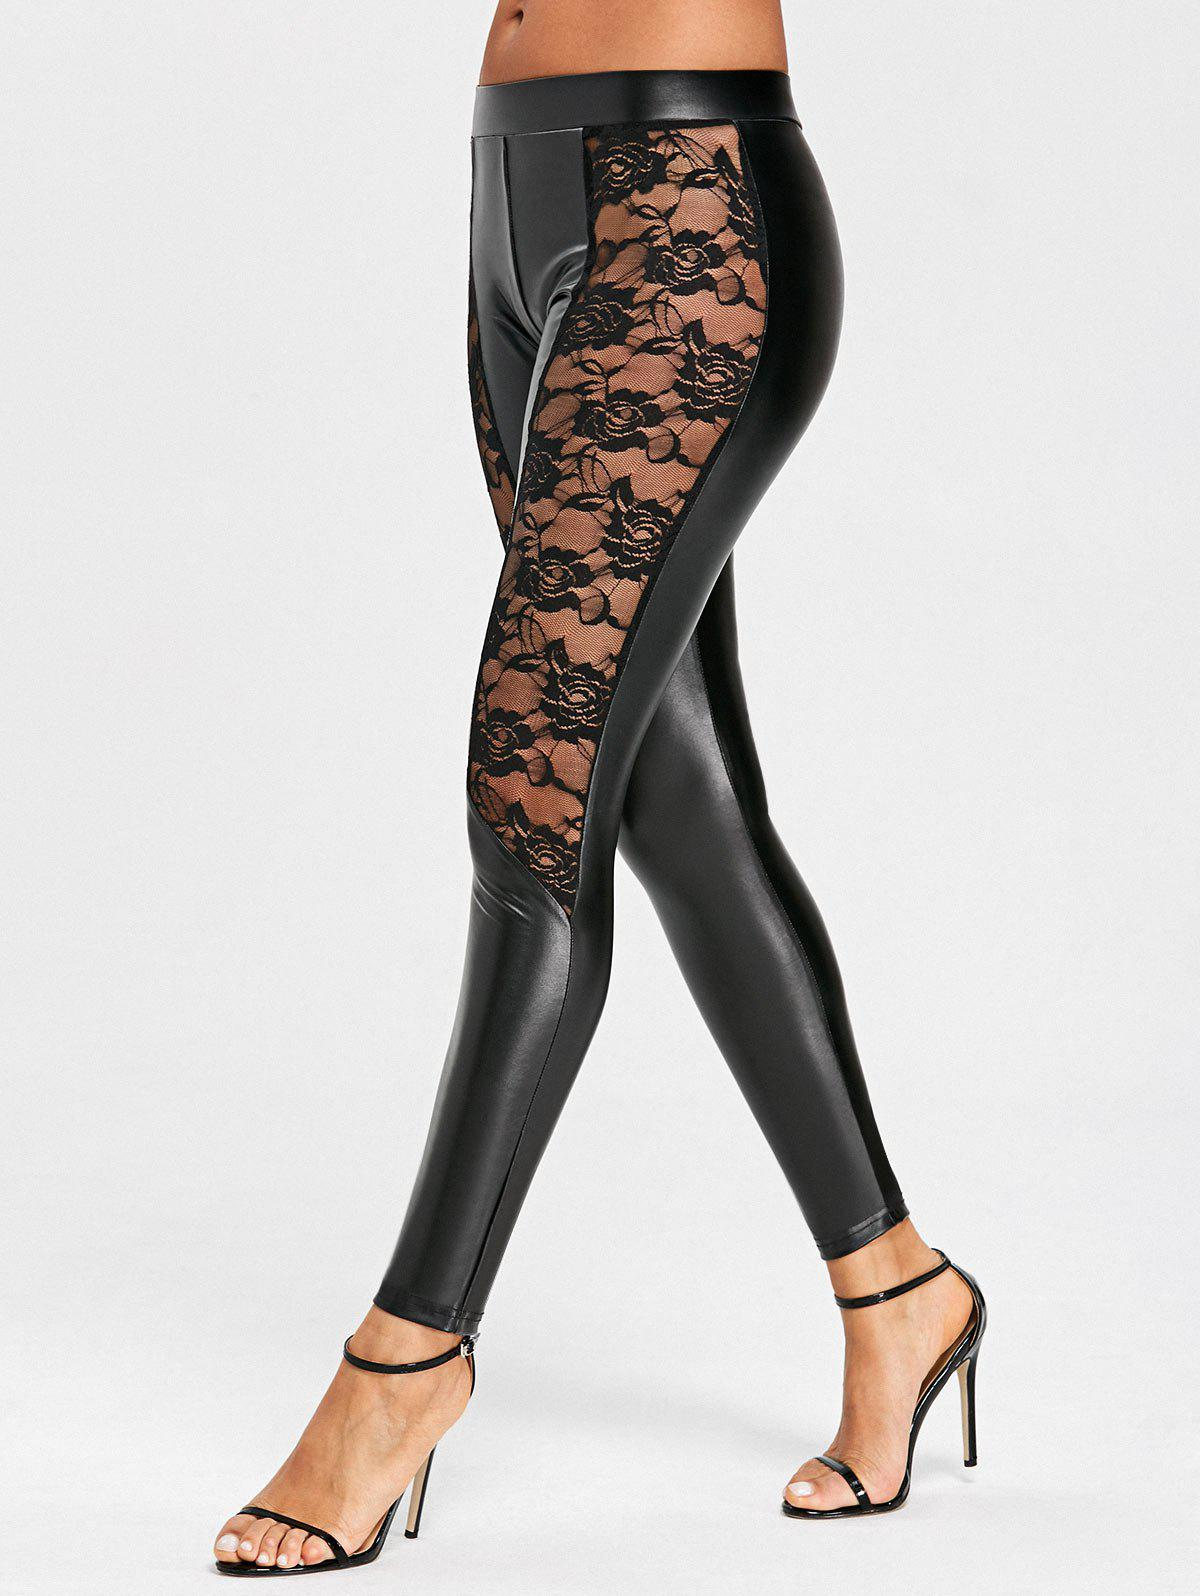 Hot Lace Panel Low Waist PU Leather Pants